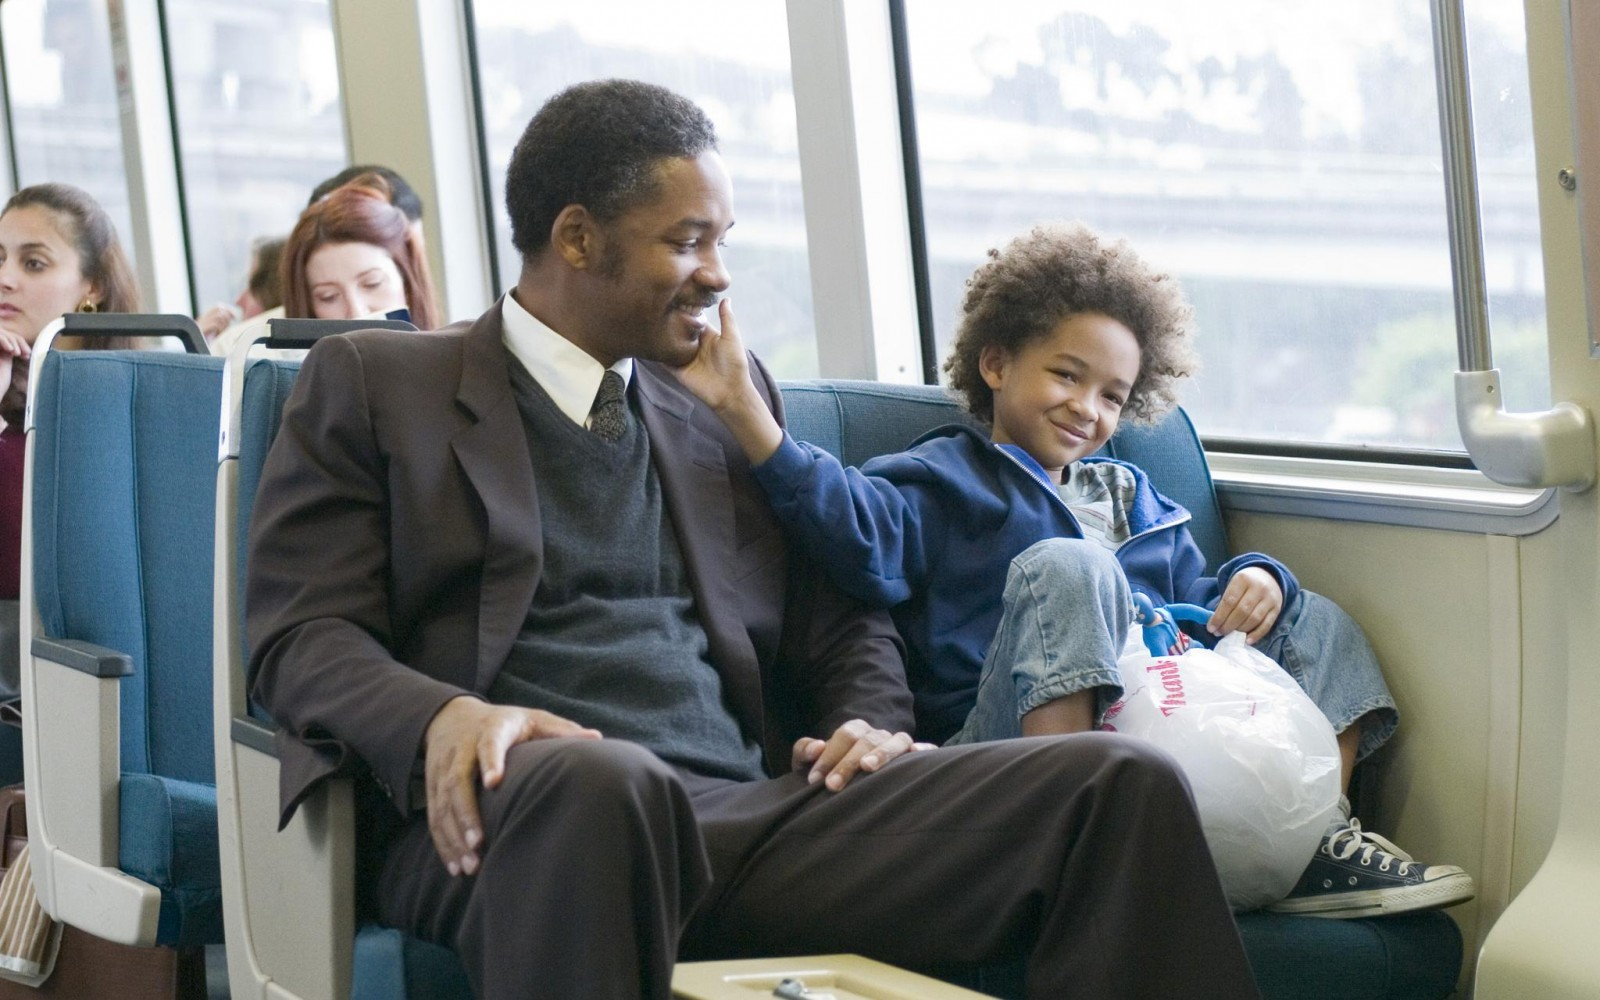 15 'Pursuit Of Happyness' Quotes That Will Inspire And Strengthen You